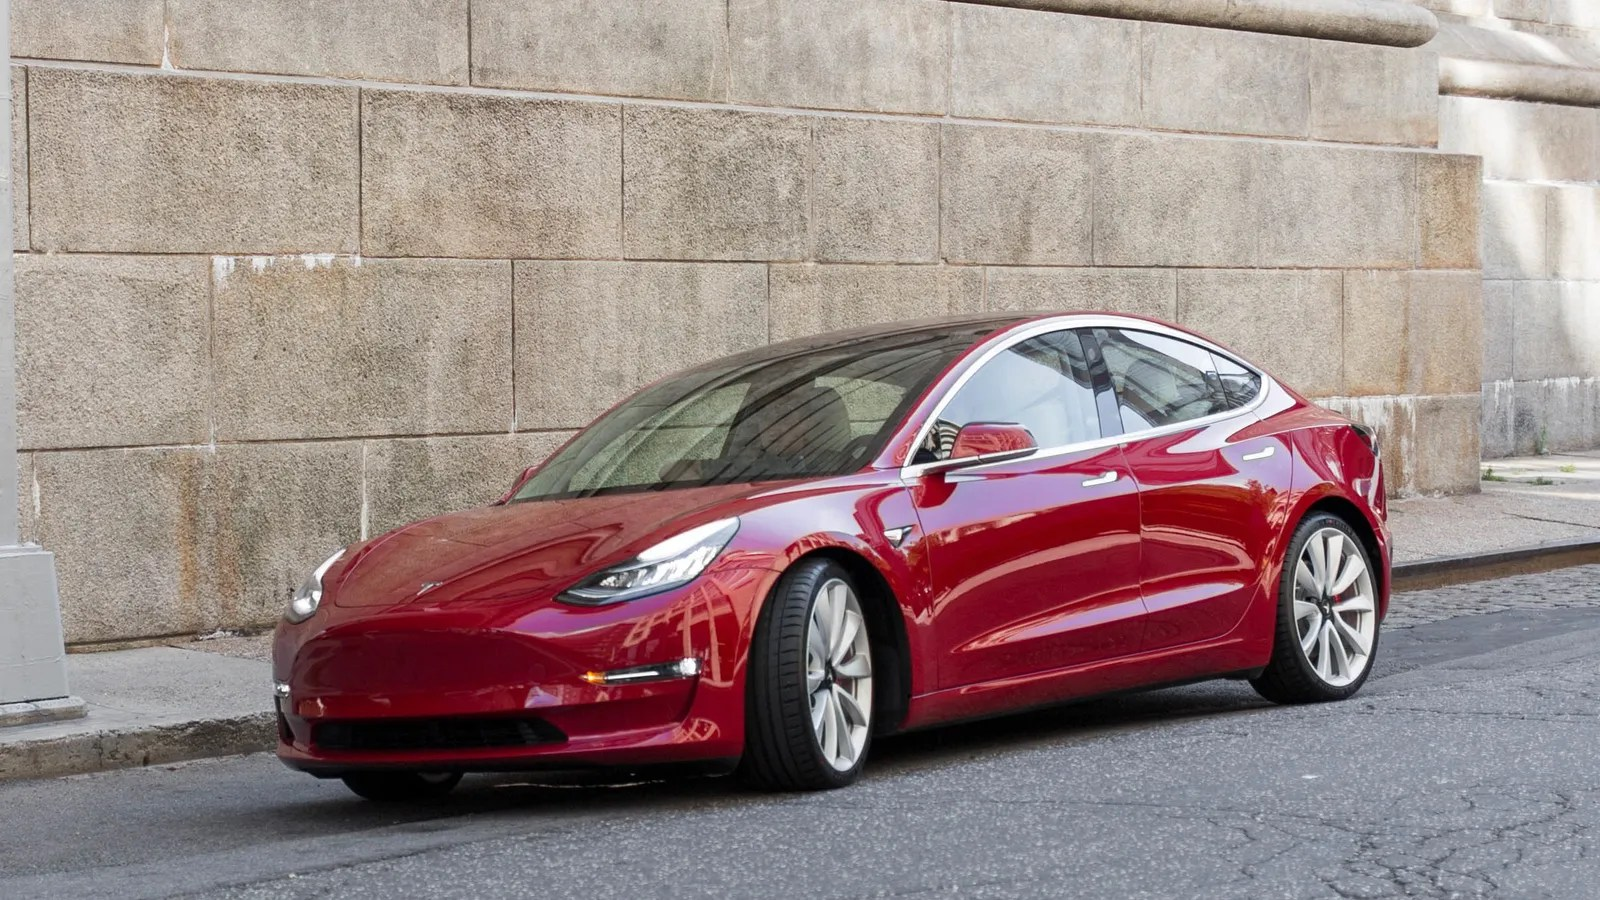 Car Wallpapers Jalopnik How Tesla Made The Model 3 Better Than The Model S